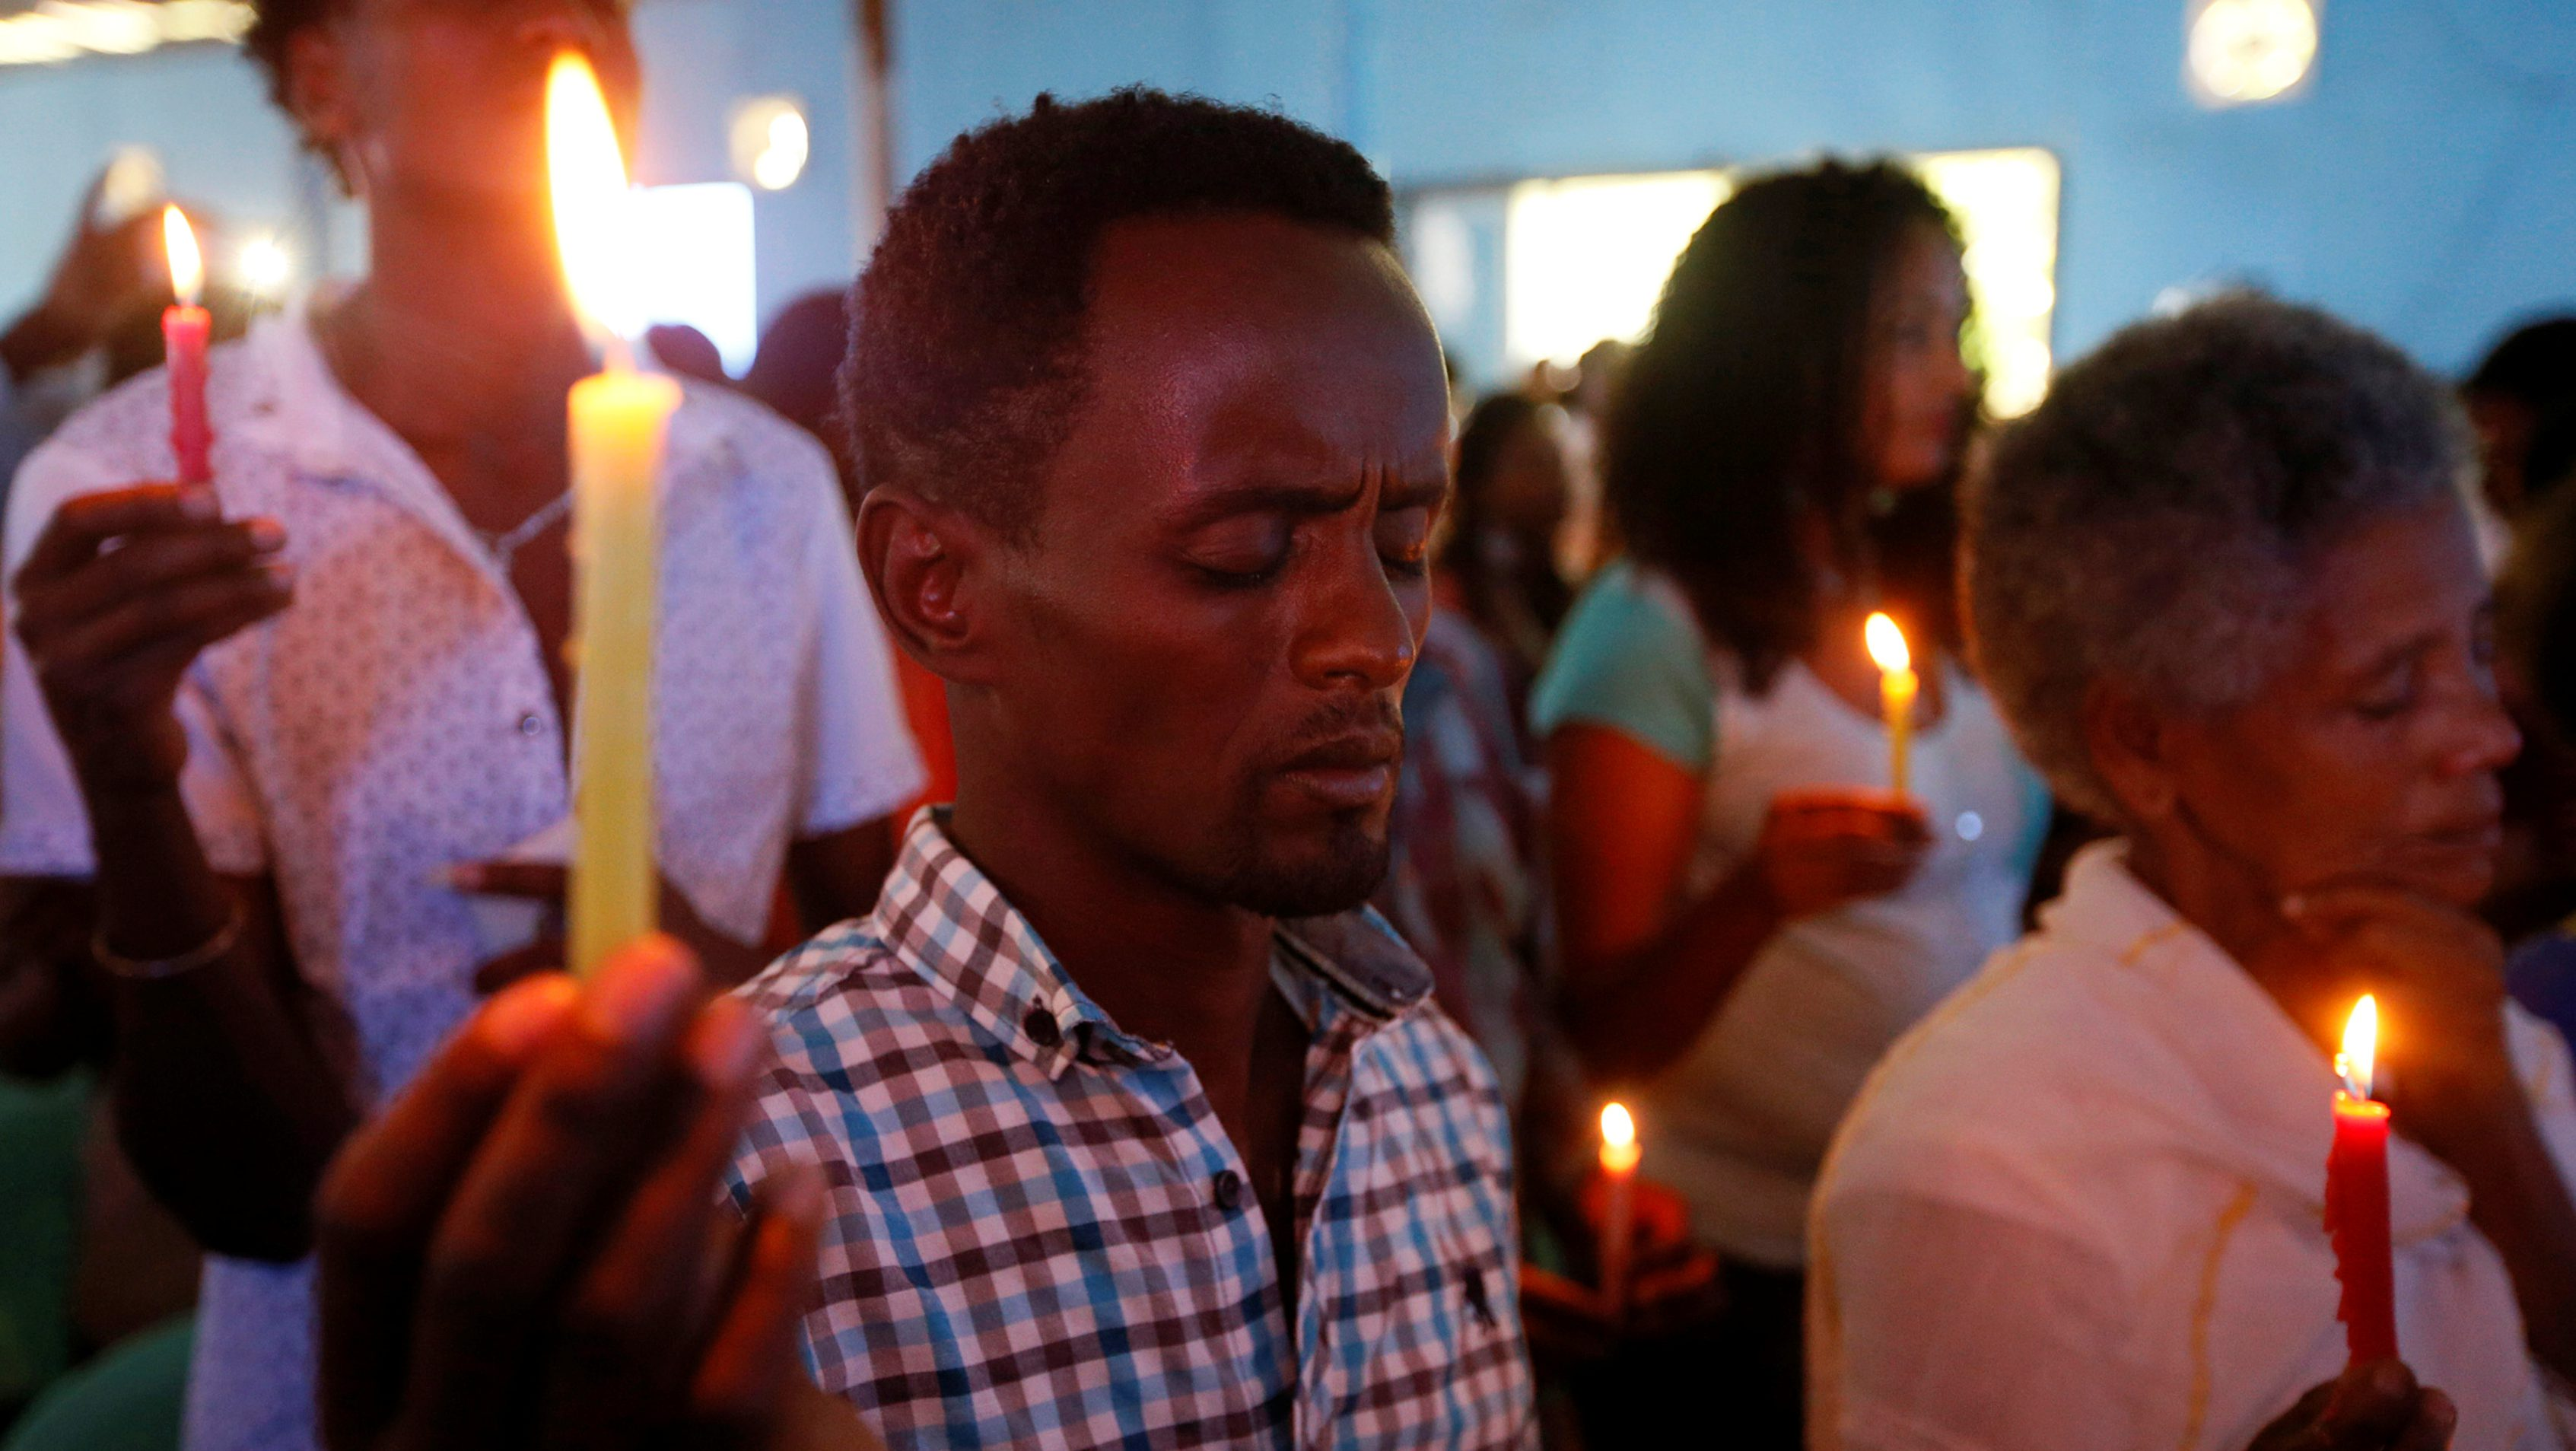 People attend prayer session at Biftu Bole Lutheran Church during a prayer and candle ceremony for protesters who died in the town of Bishoftu a week ago during Ireecha, the thanksgiving festival for the Oromo people, Addis Ababa, Ethiopia, October 9, 2016.